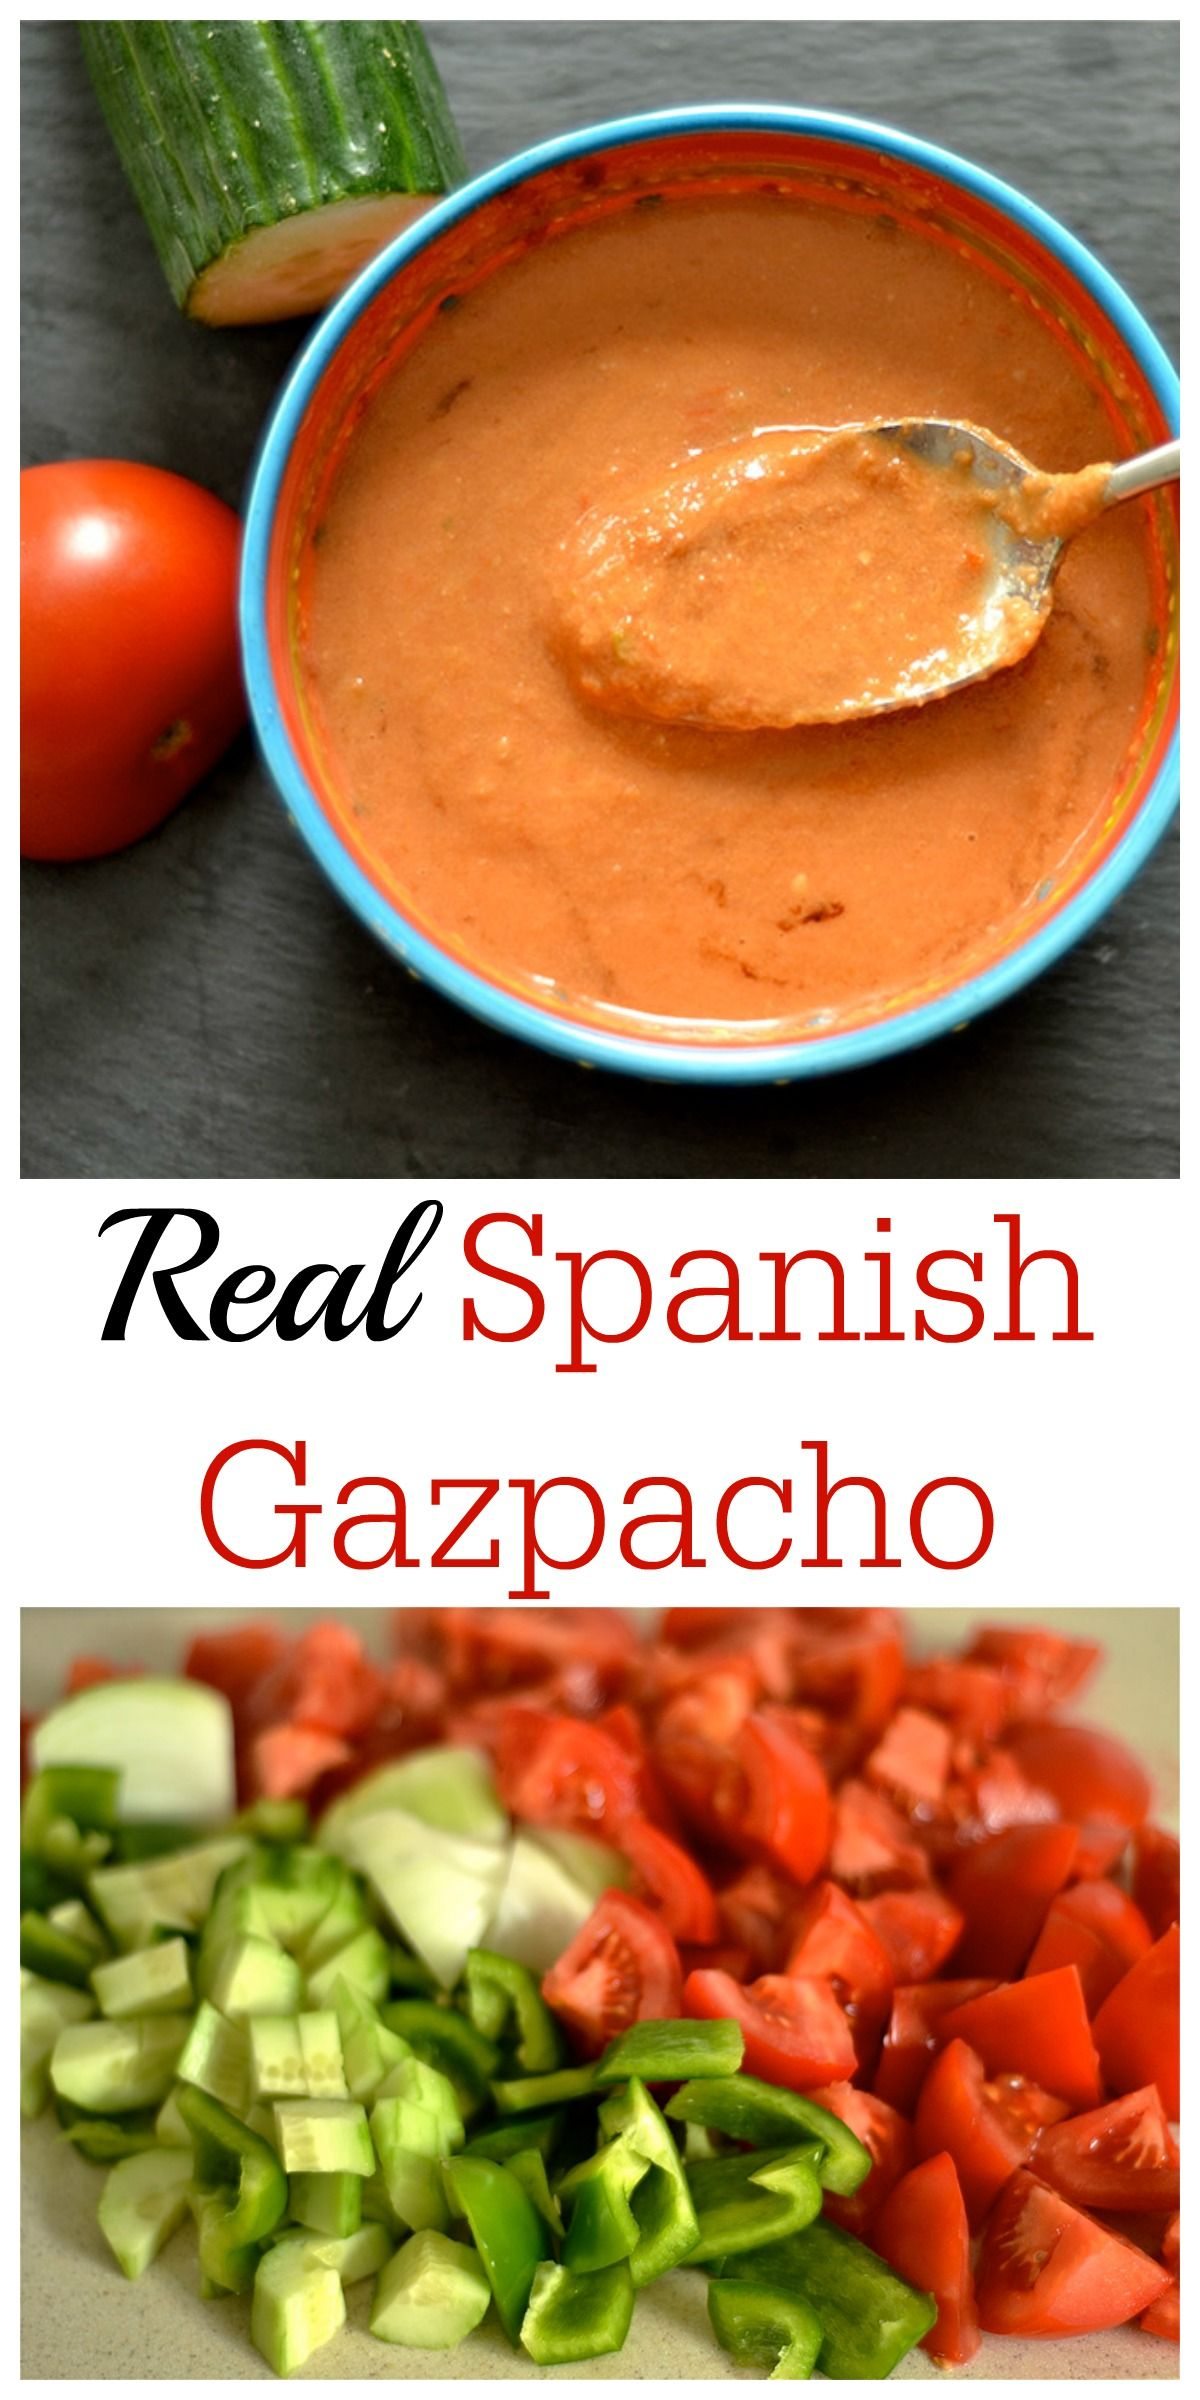 The perfect summer meal search no more for the perfect gazpacho the perfect summer meal search no more for the perfect gazpacho recipe this forumfinder Choice Image